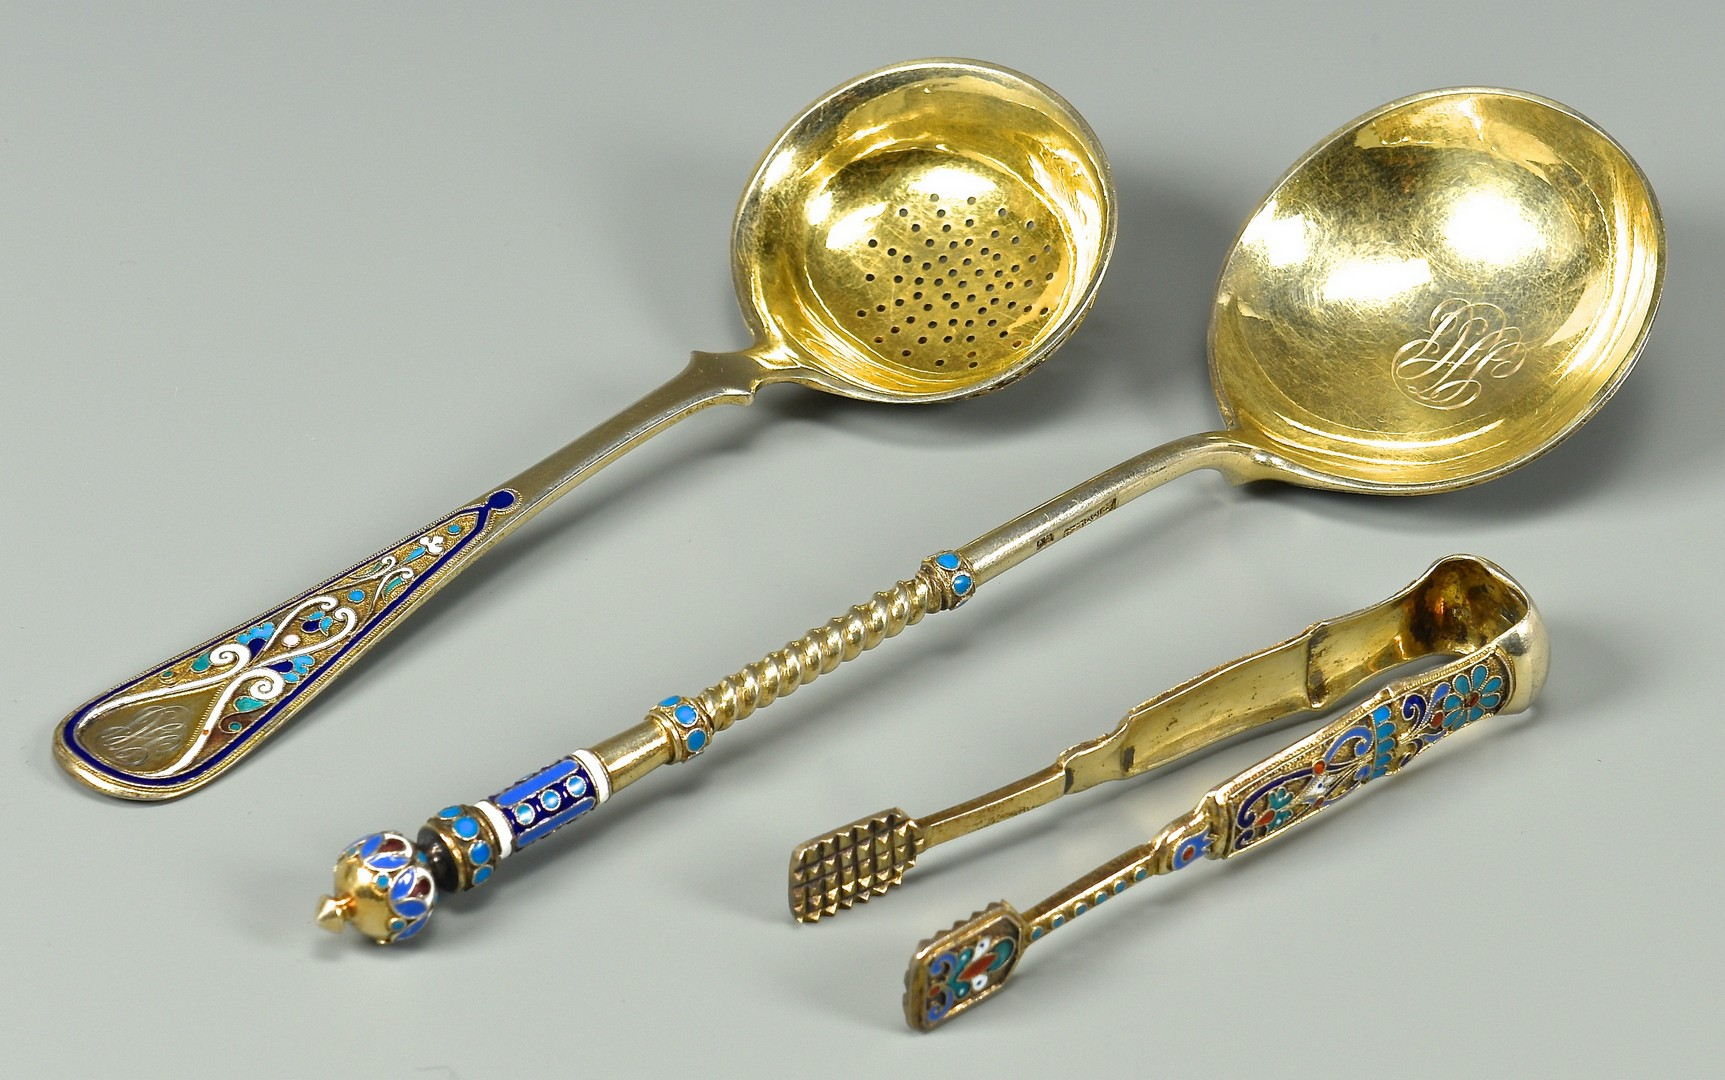 Lot 49: 3 pcs Russian Enameled, Parcel Gilt Flatware